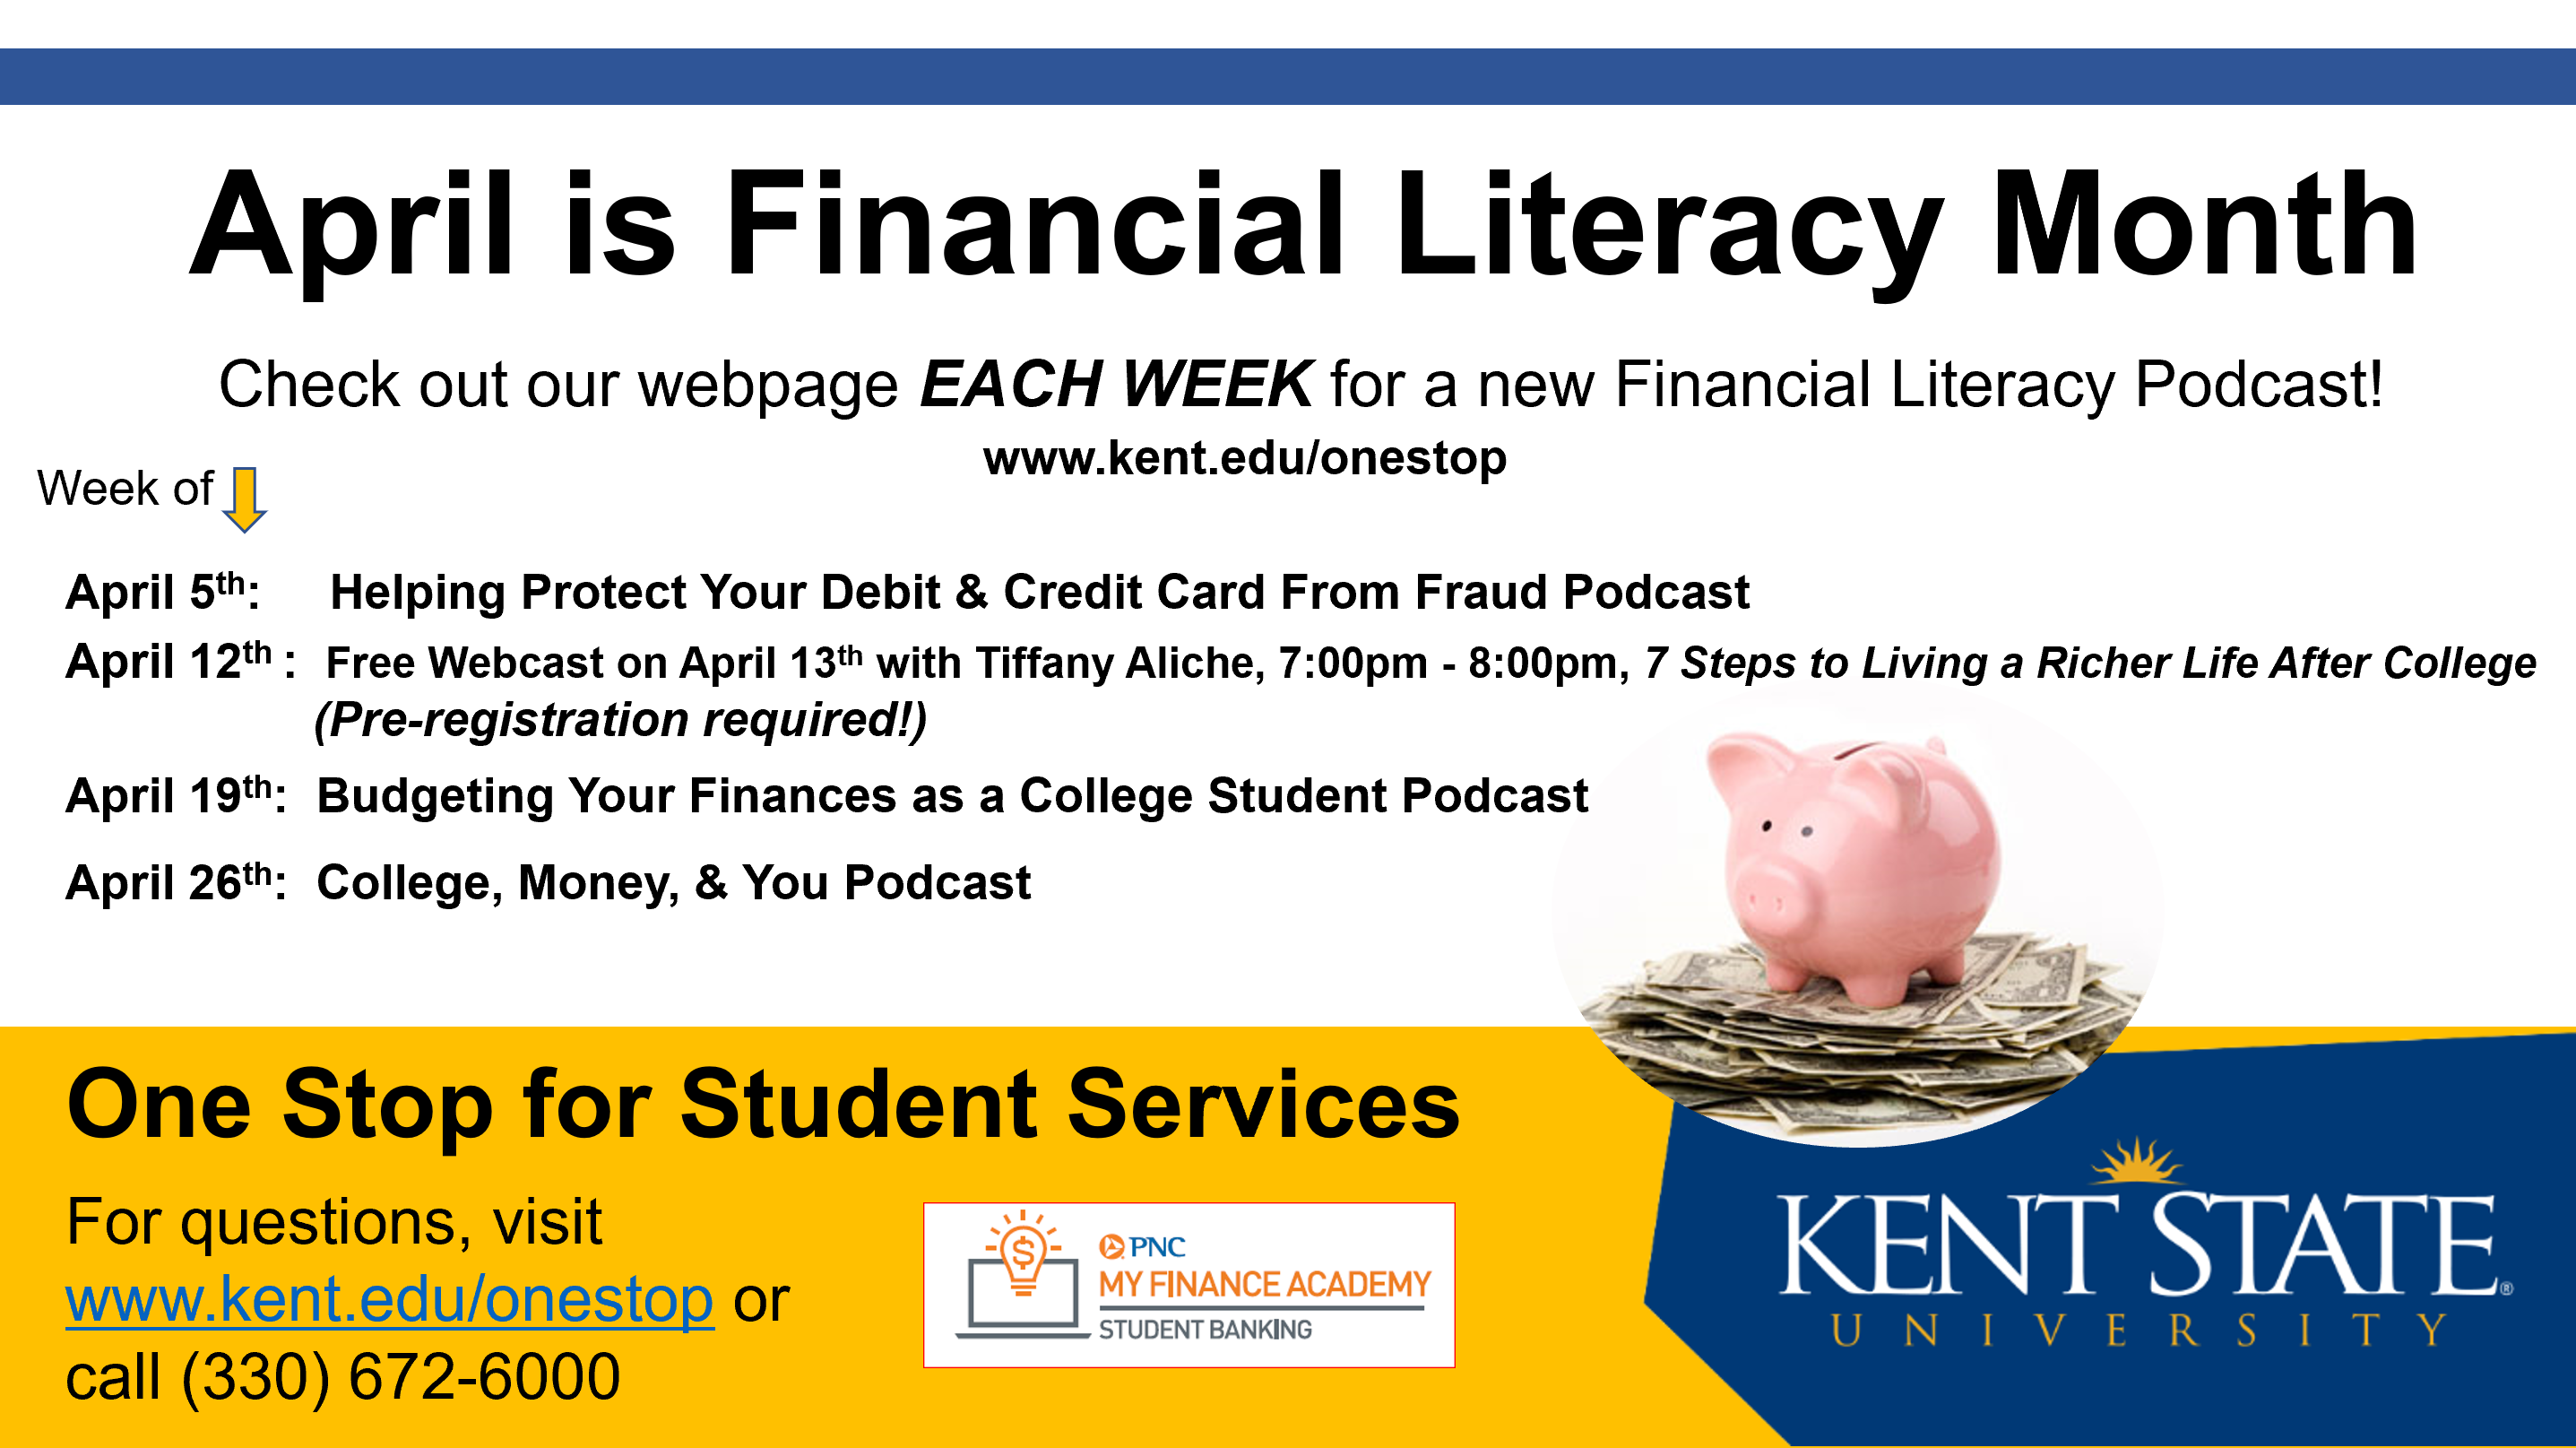 A flier for a financial literacy event taking place over the course of April 2021 featuring various podcasts to be posted online